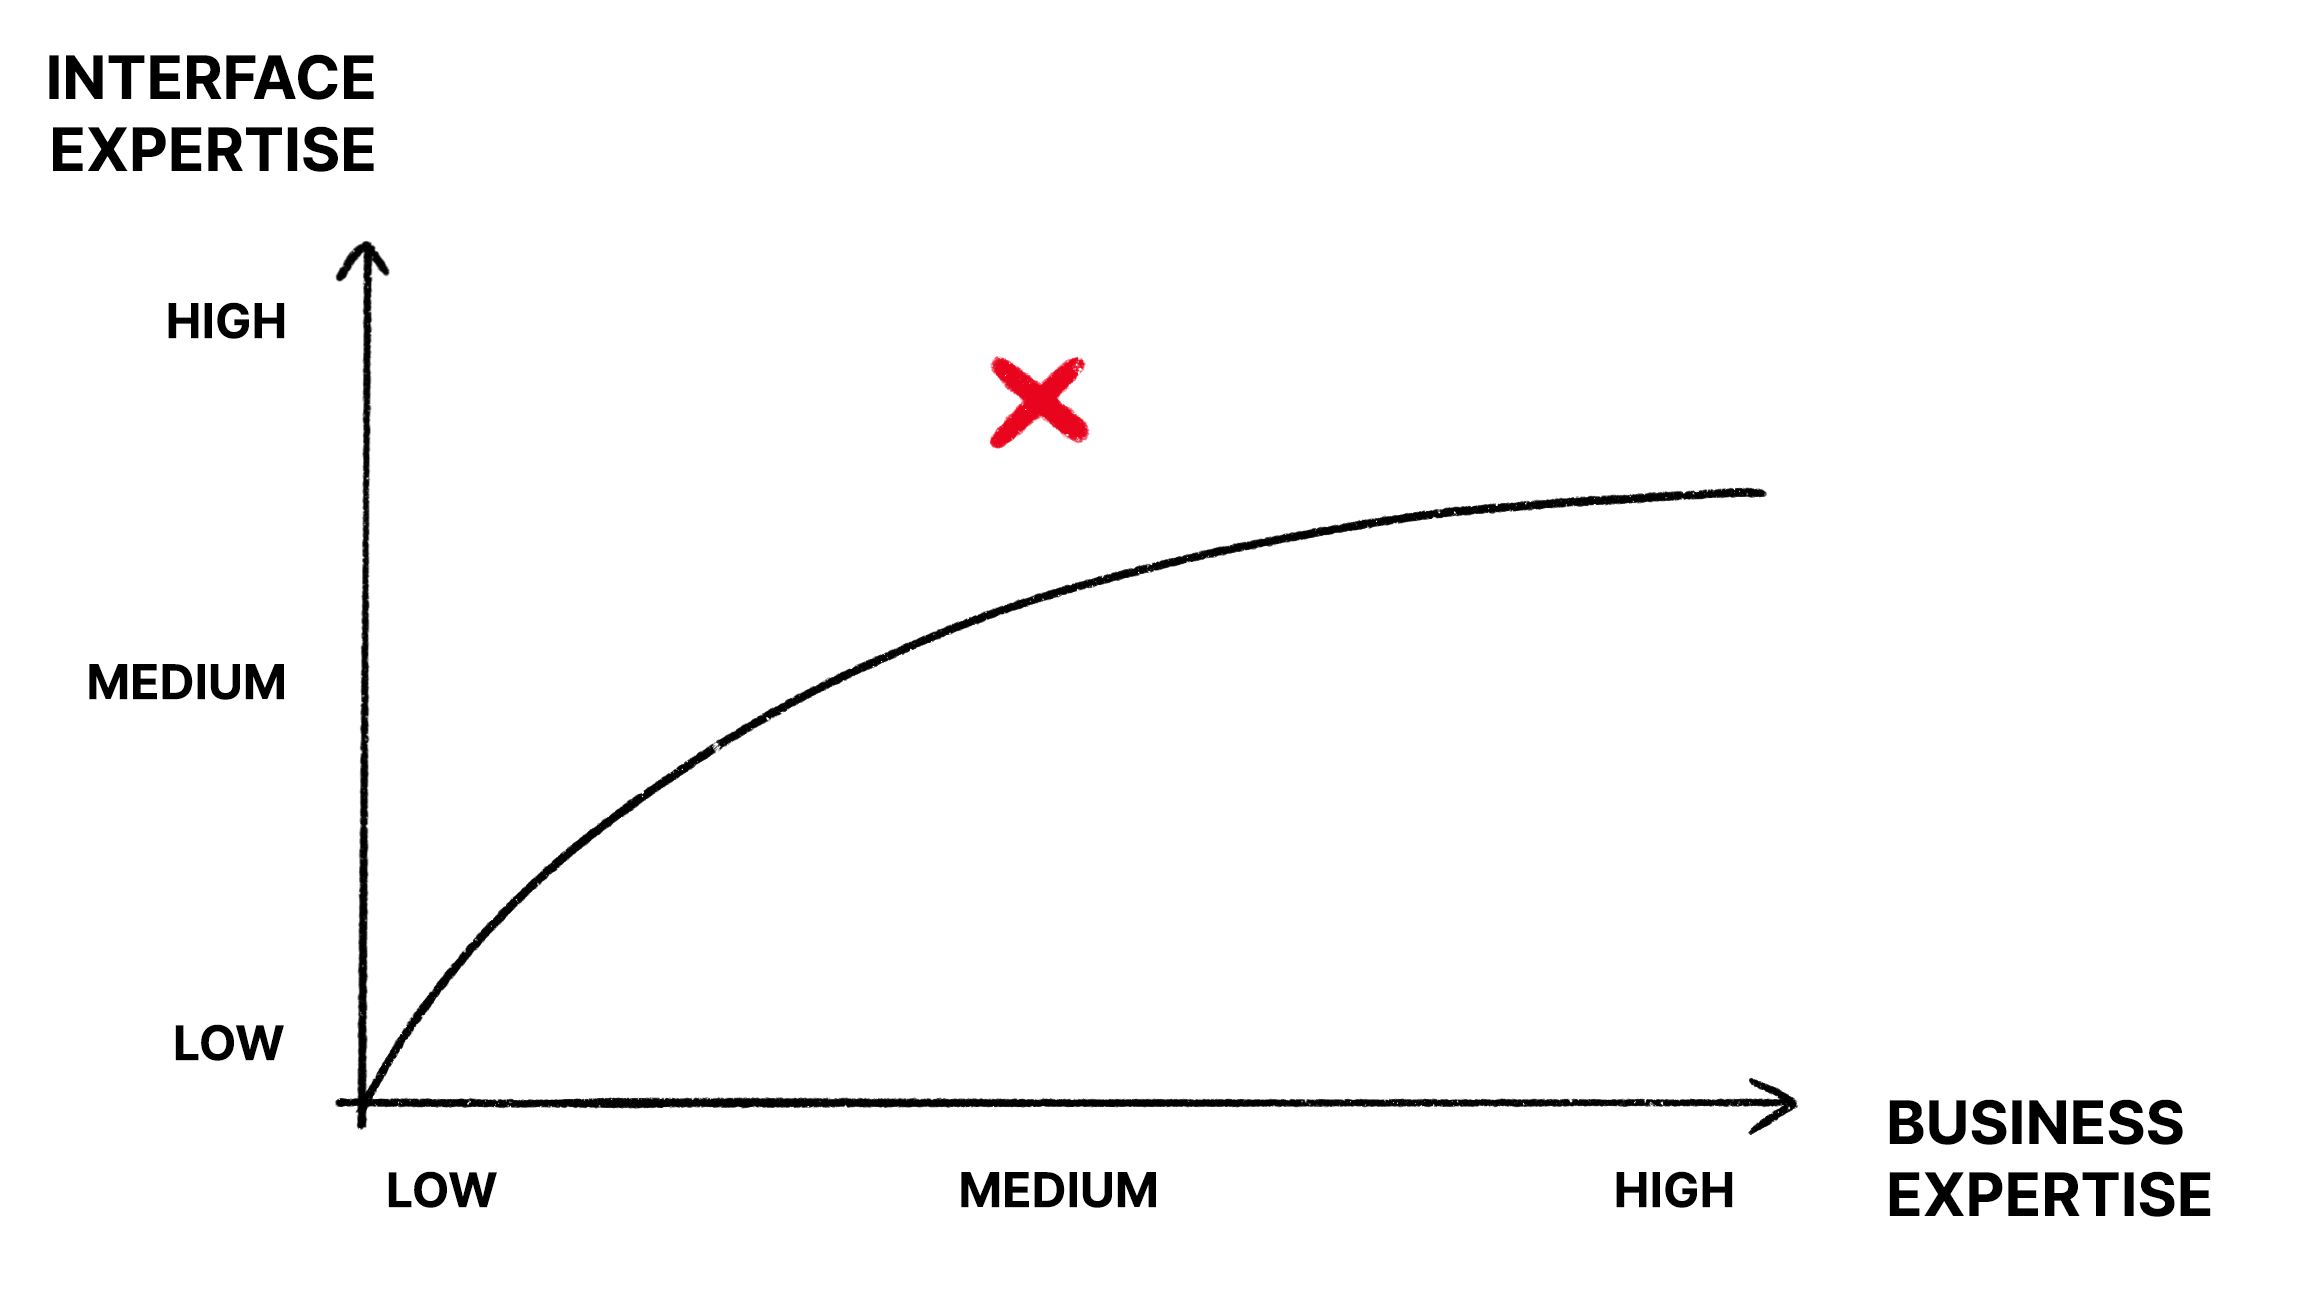 A graph with a mark on high interface expertise and medium business expertise.